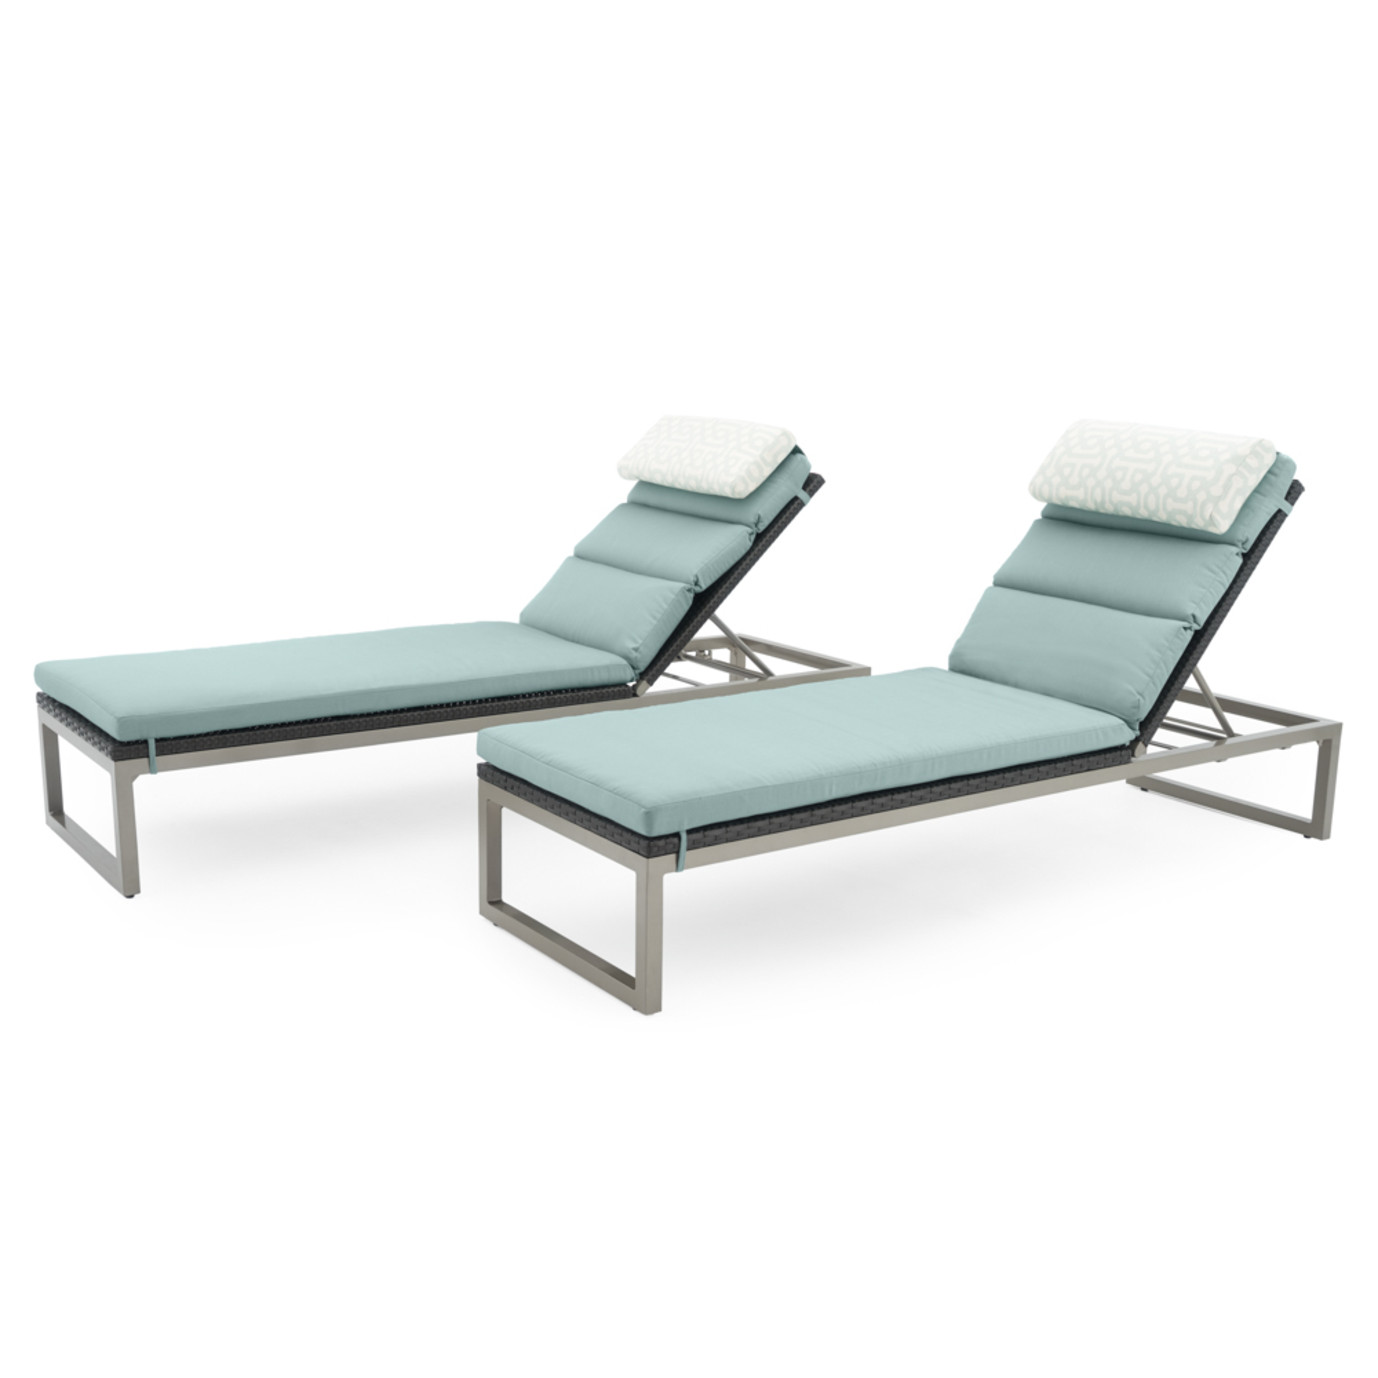 Milo™ Espresso Chaise Lounges - Spa Blue